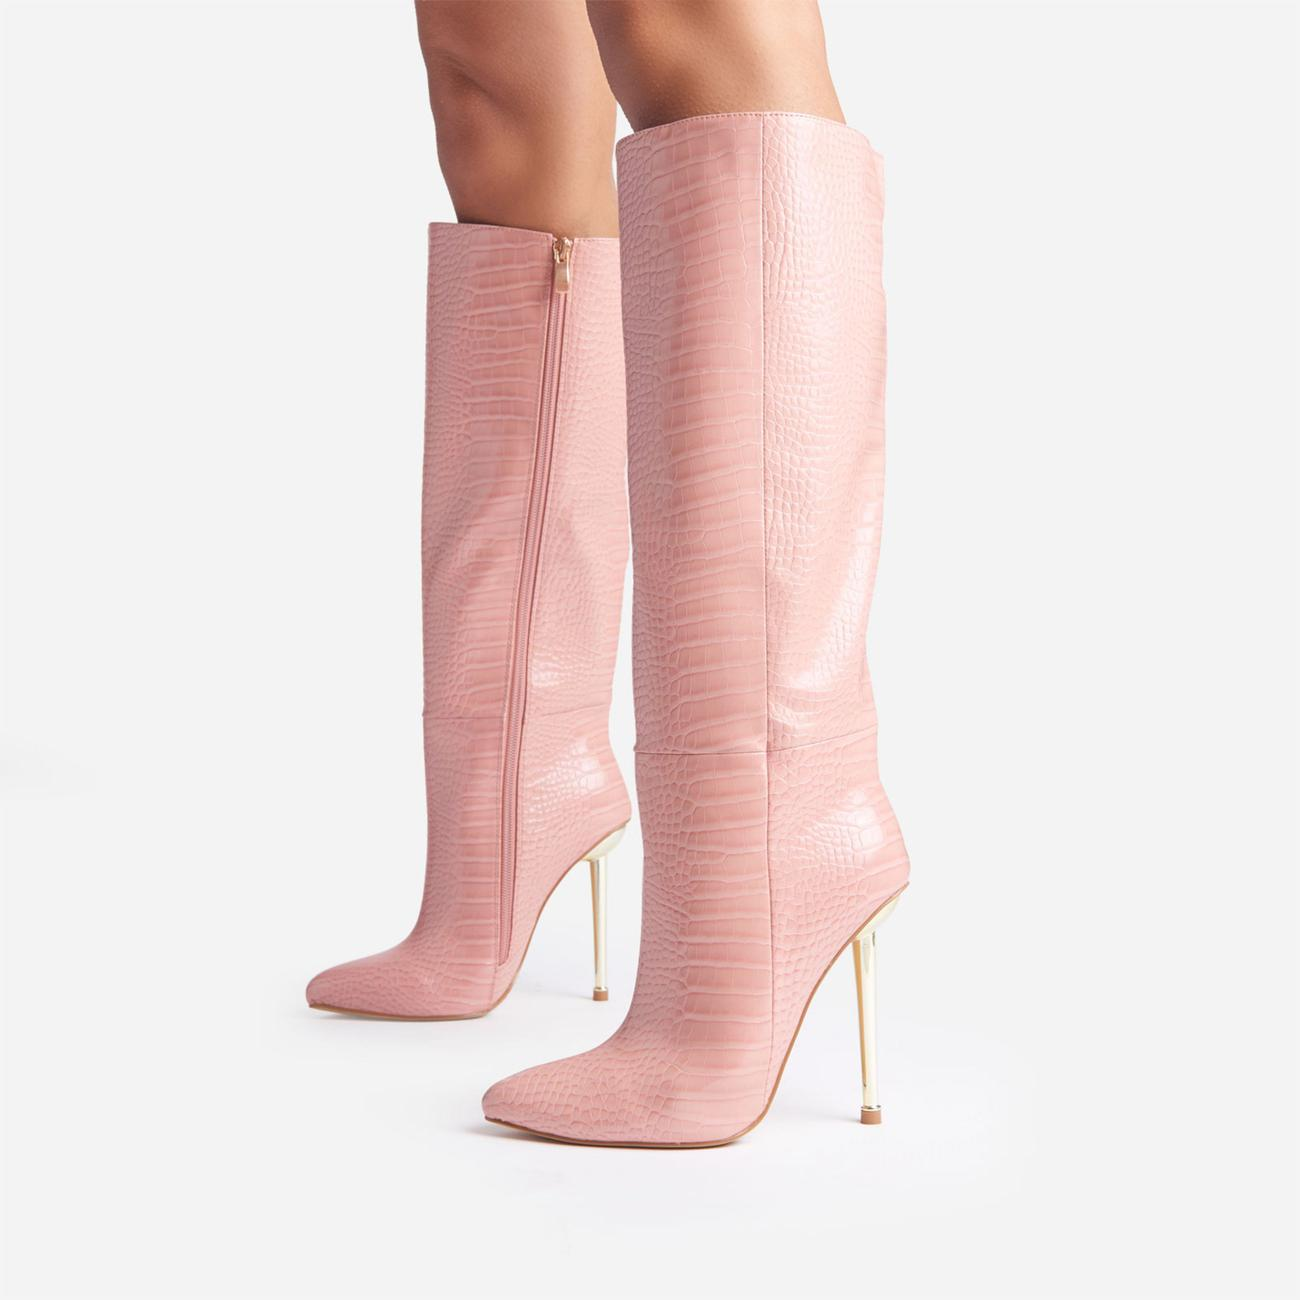 Clarity Metallic Heel Knee High Long Boots In Pink Croc Print Faux Leather Image 2